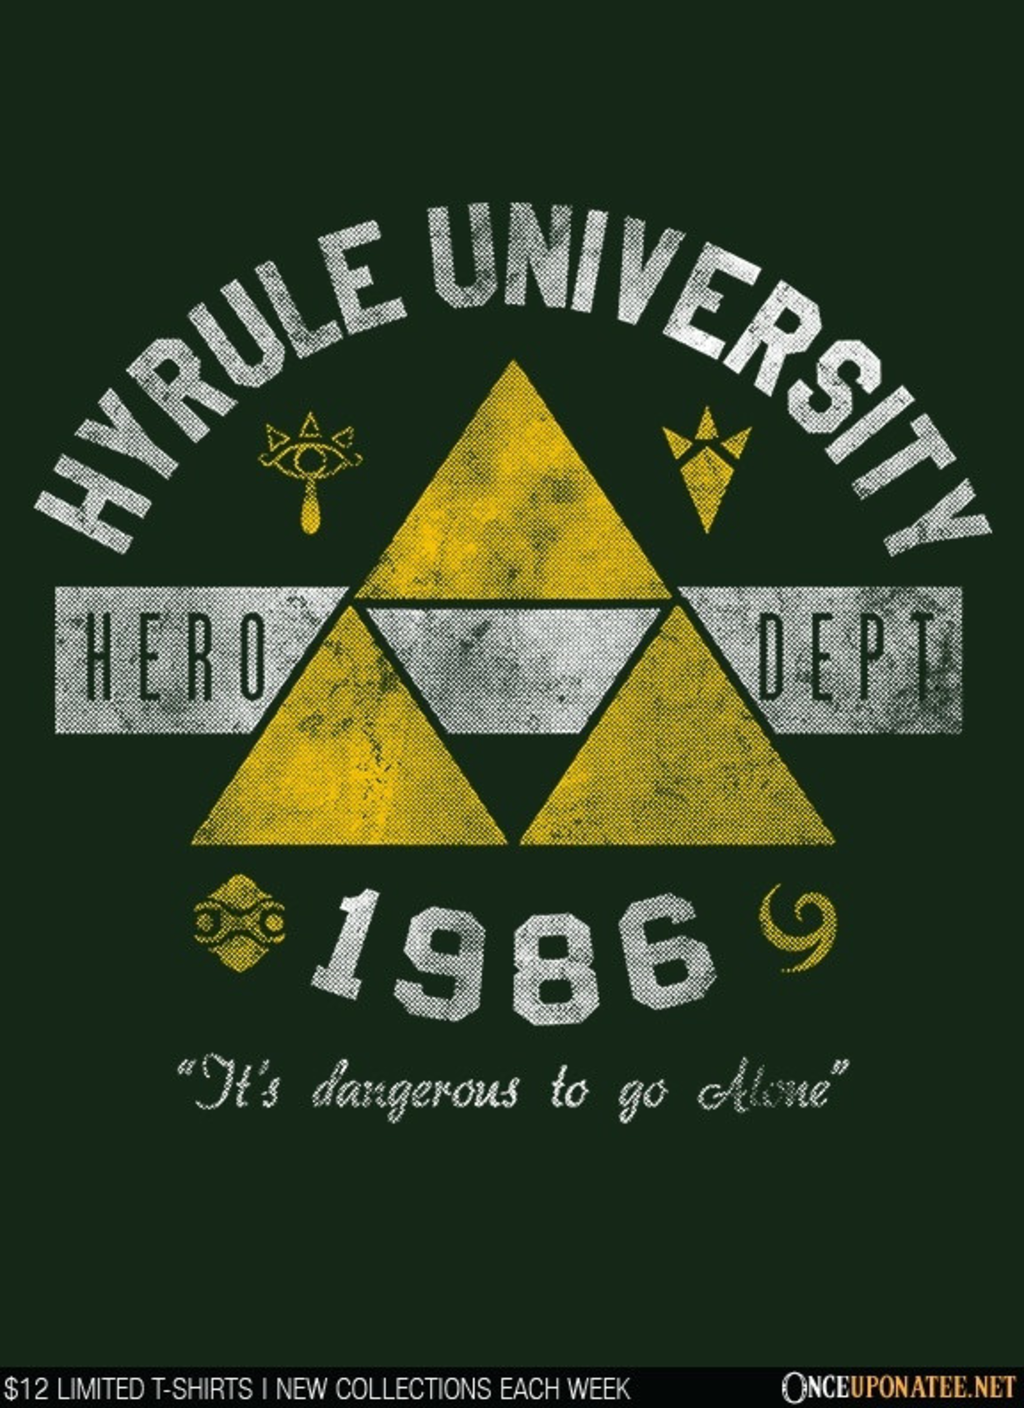 Once Upon a Tee: Hyrule University